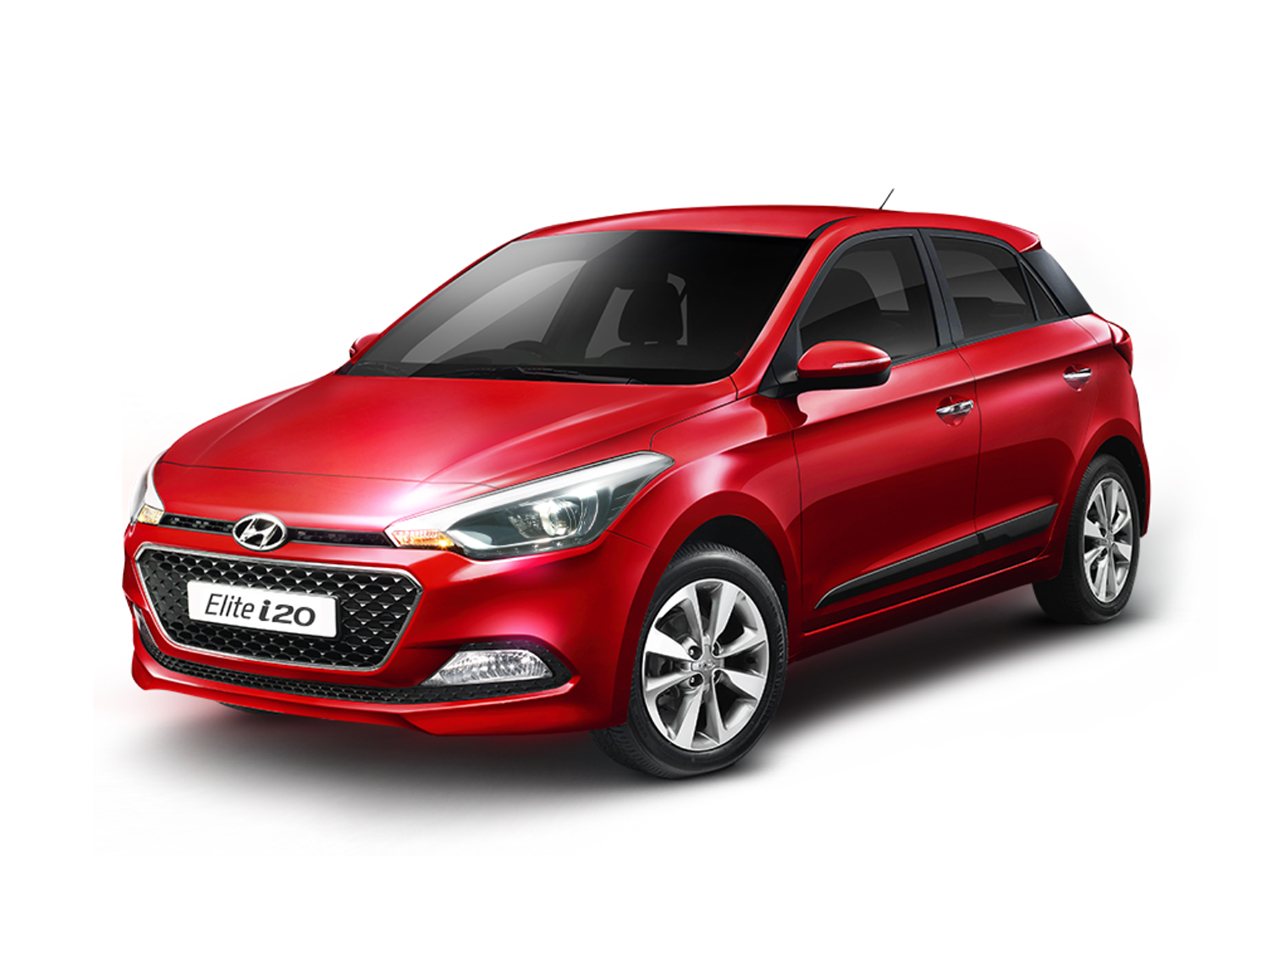 2018 hyundai i20 prices in bahrain gulf specs reviews for manama yallamotor. Black Bedroom Furniture Sets. Home Design Ideas